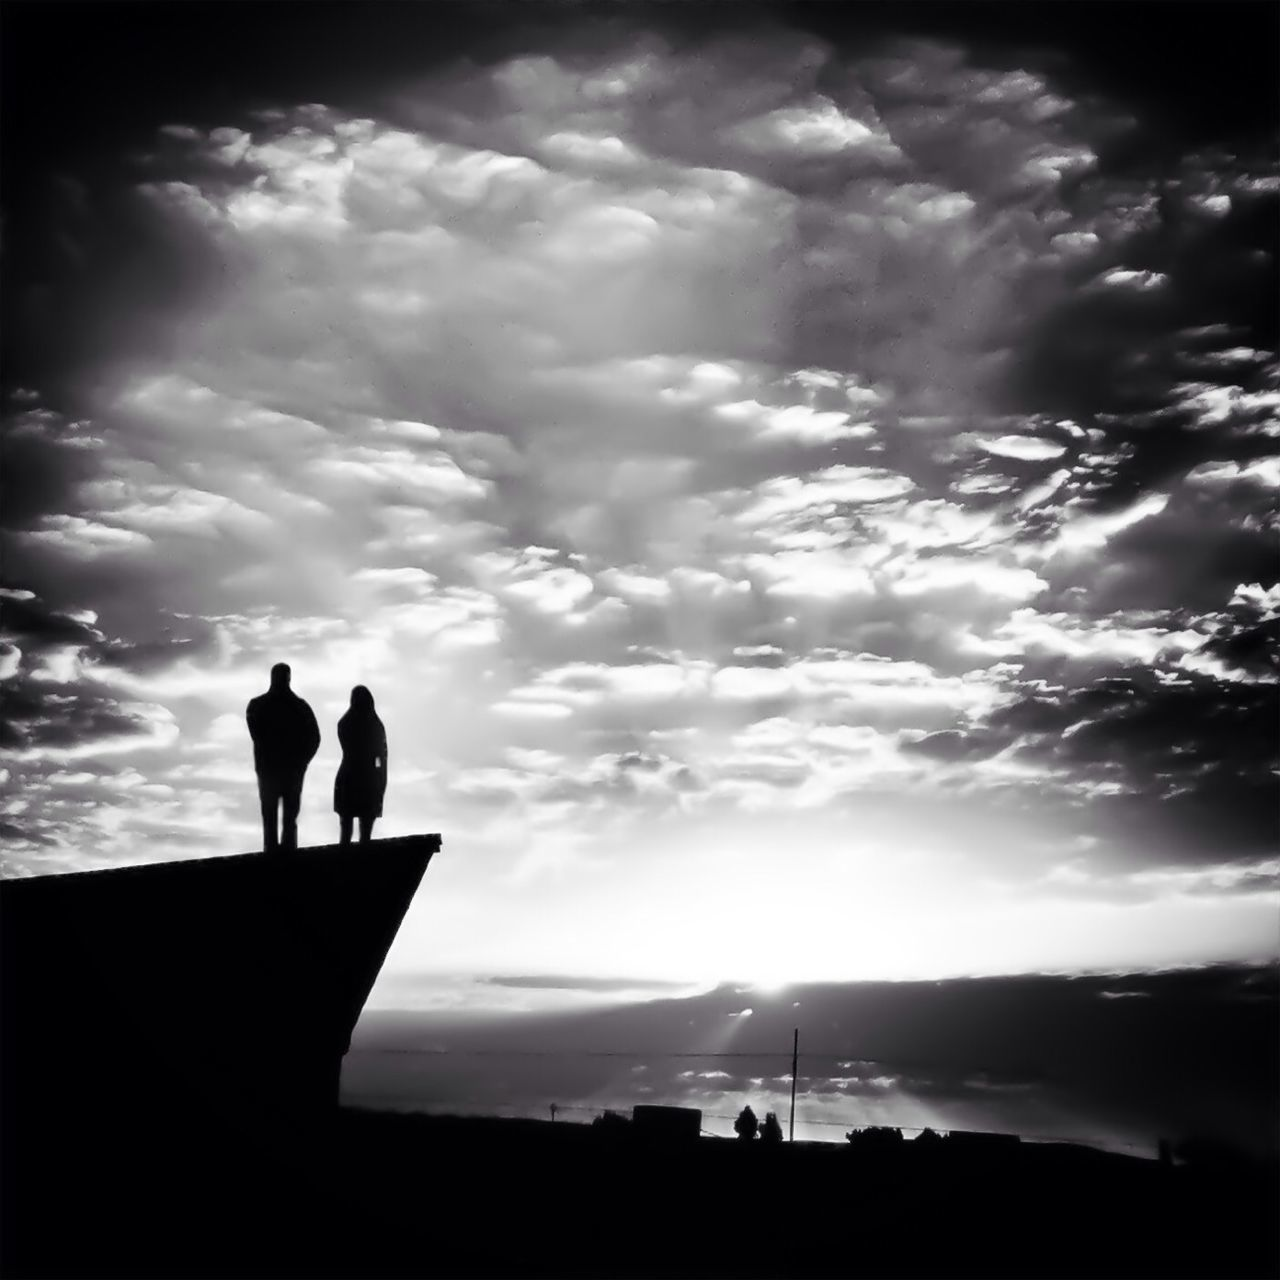 Rear View Of Silhouette People Standing On Retaining Wall Against Cloudy Sky